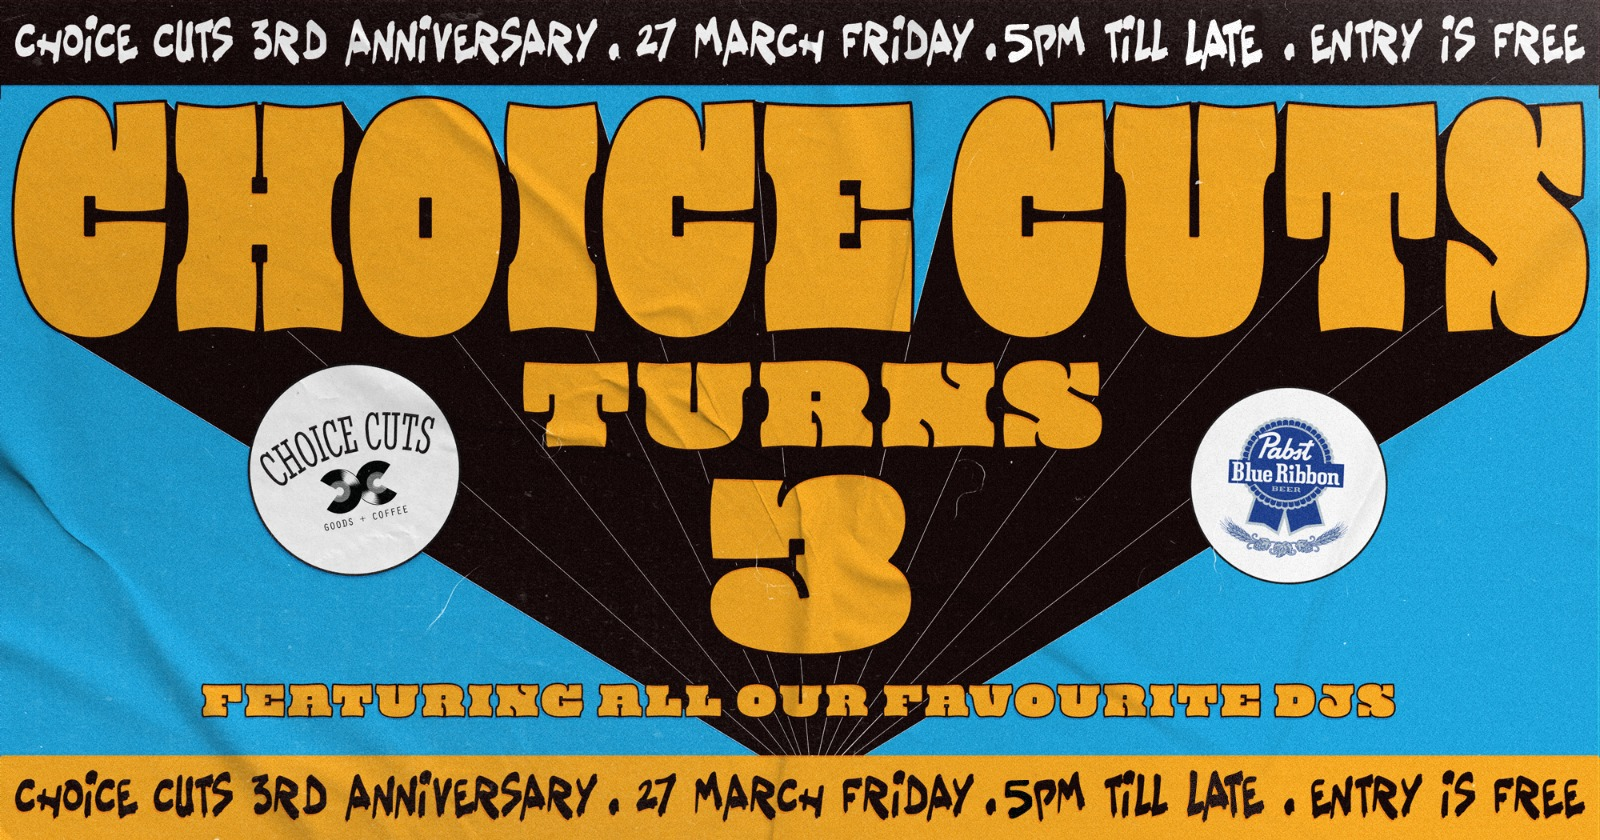 Choice Cuts Turns 3! POSTPONED BUT STILL OPEN FOR SNEAK PREVIEW (LIMITED SPACE REDUCED)